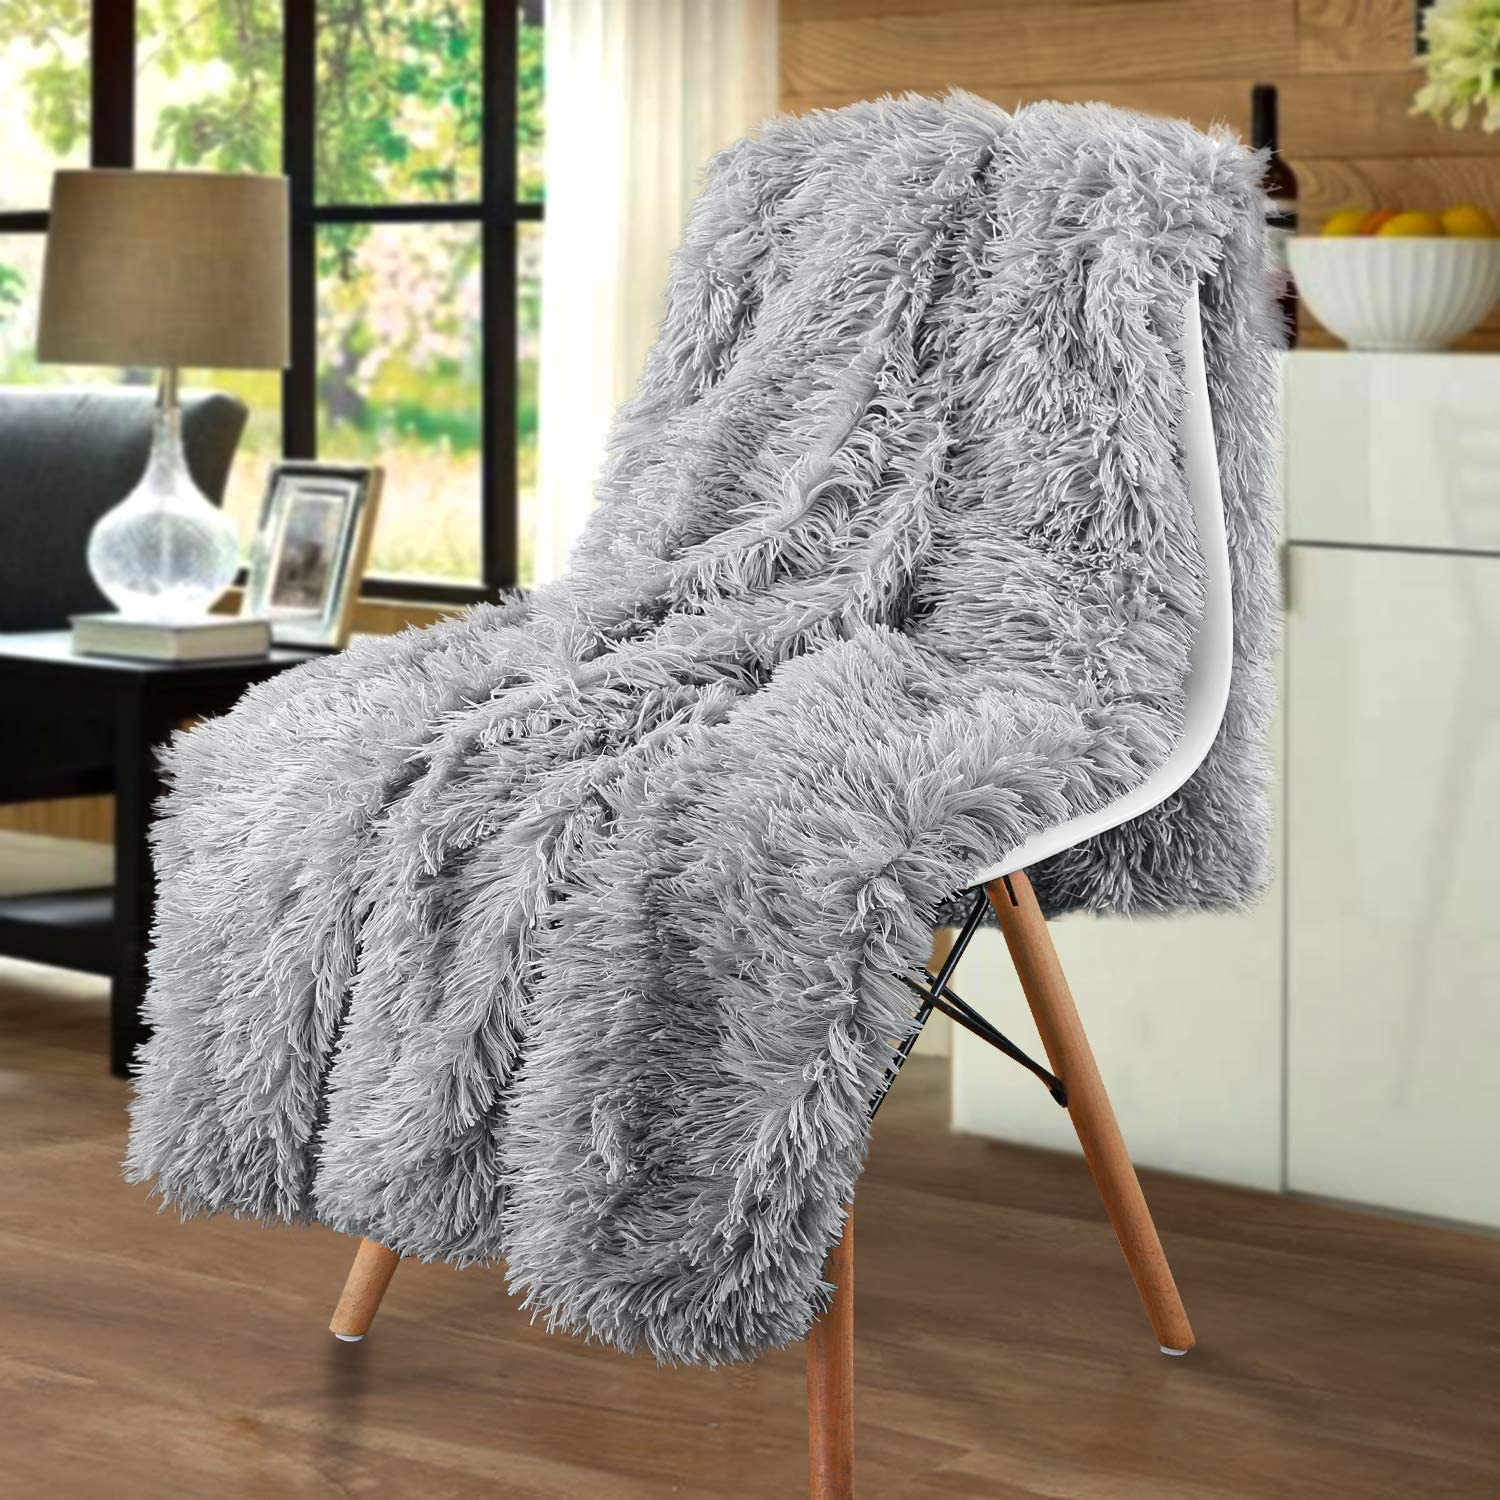 Merit Home Shag with Sherpa Reversible Warm Throw Blanket, Ultra Soft, Cozy Plush Luxury Fuzzy Longfur Blanket, Hypoallergenic and Washable Couch Bed Fluffy Furry Throws Photo Props, 50x60-Grey